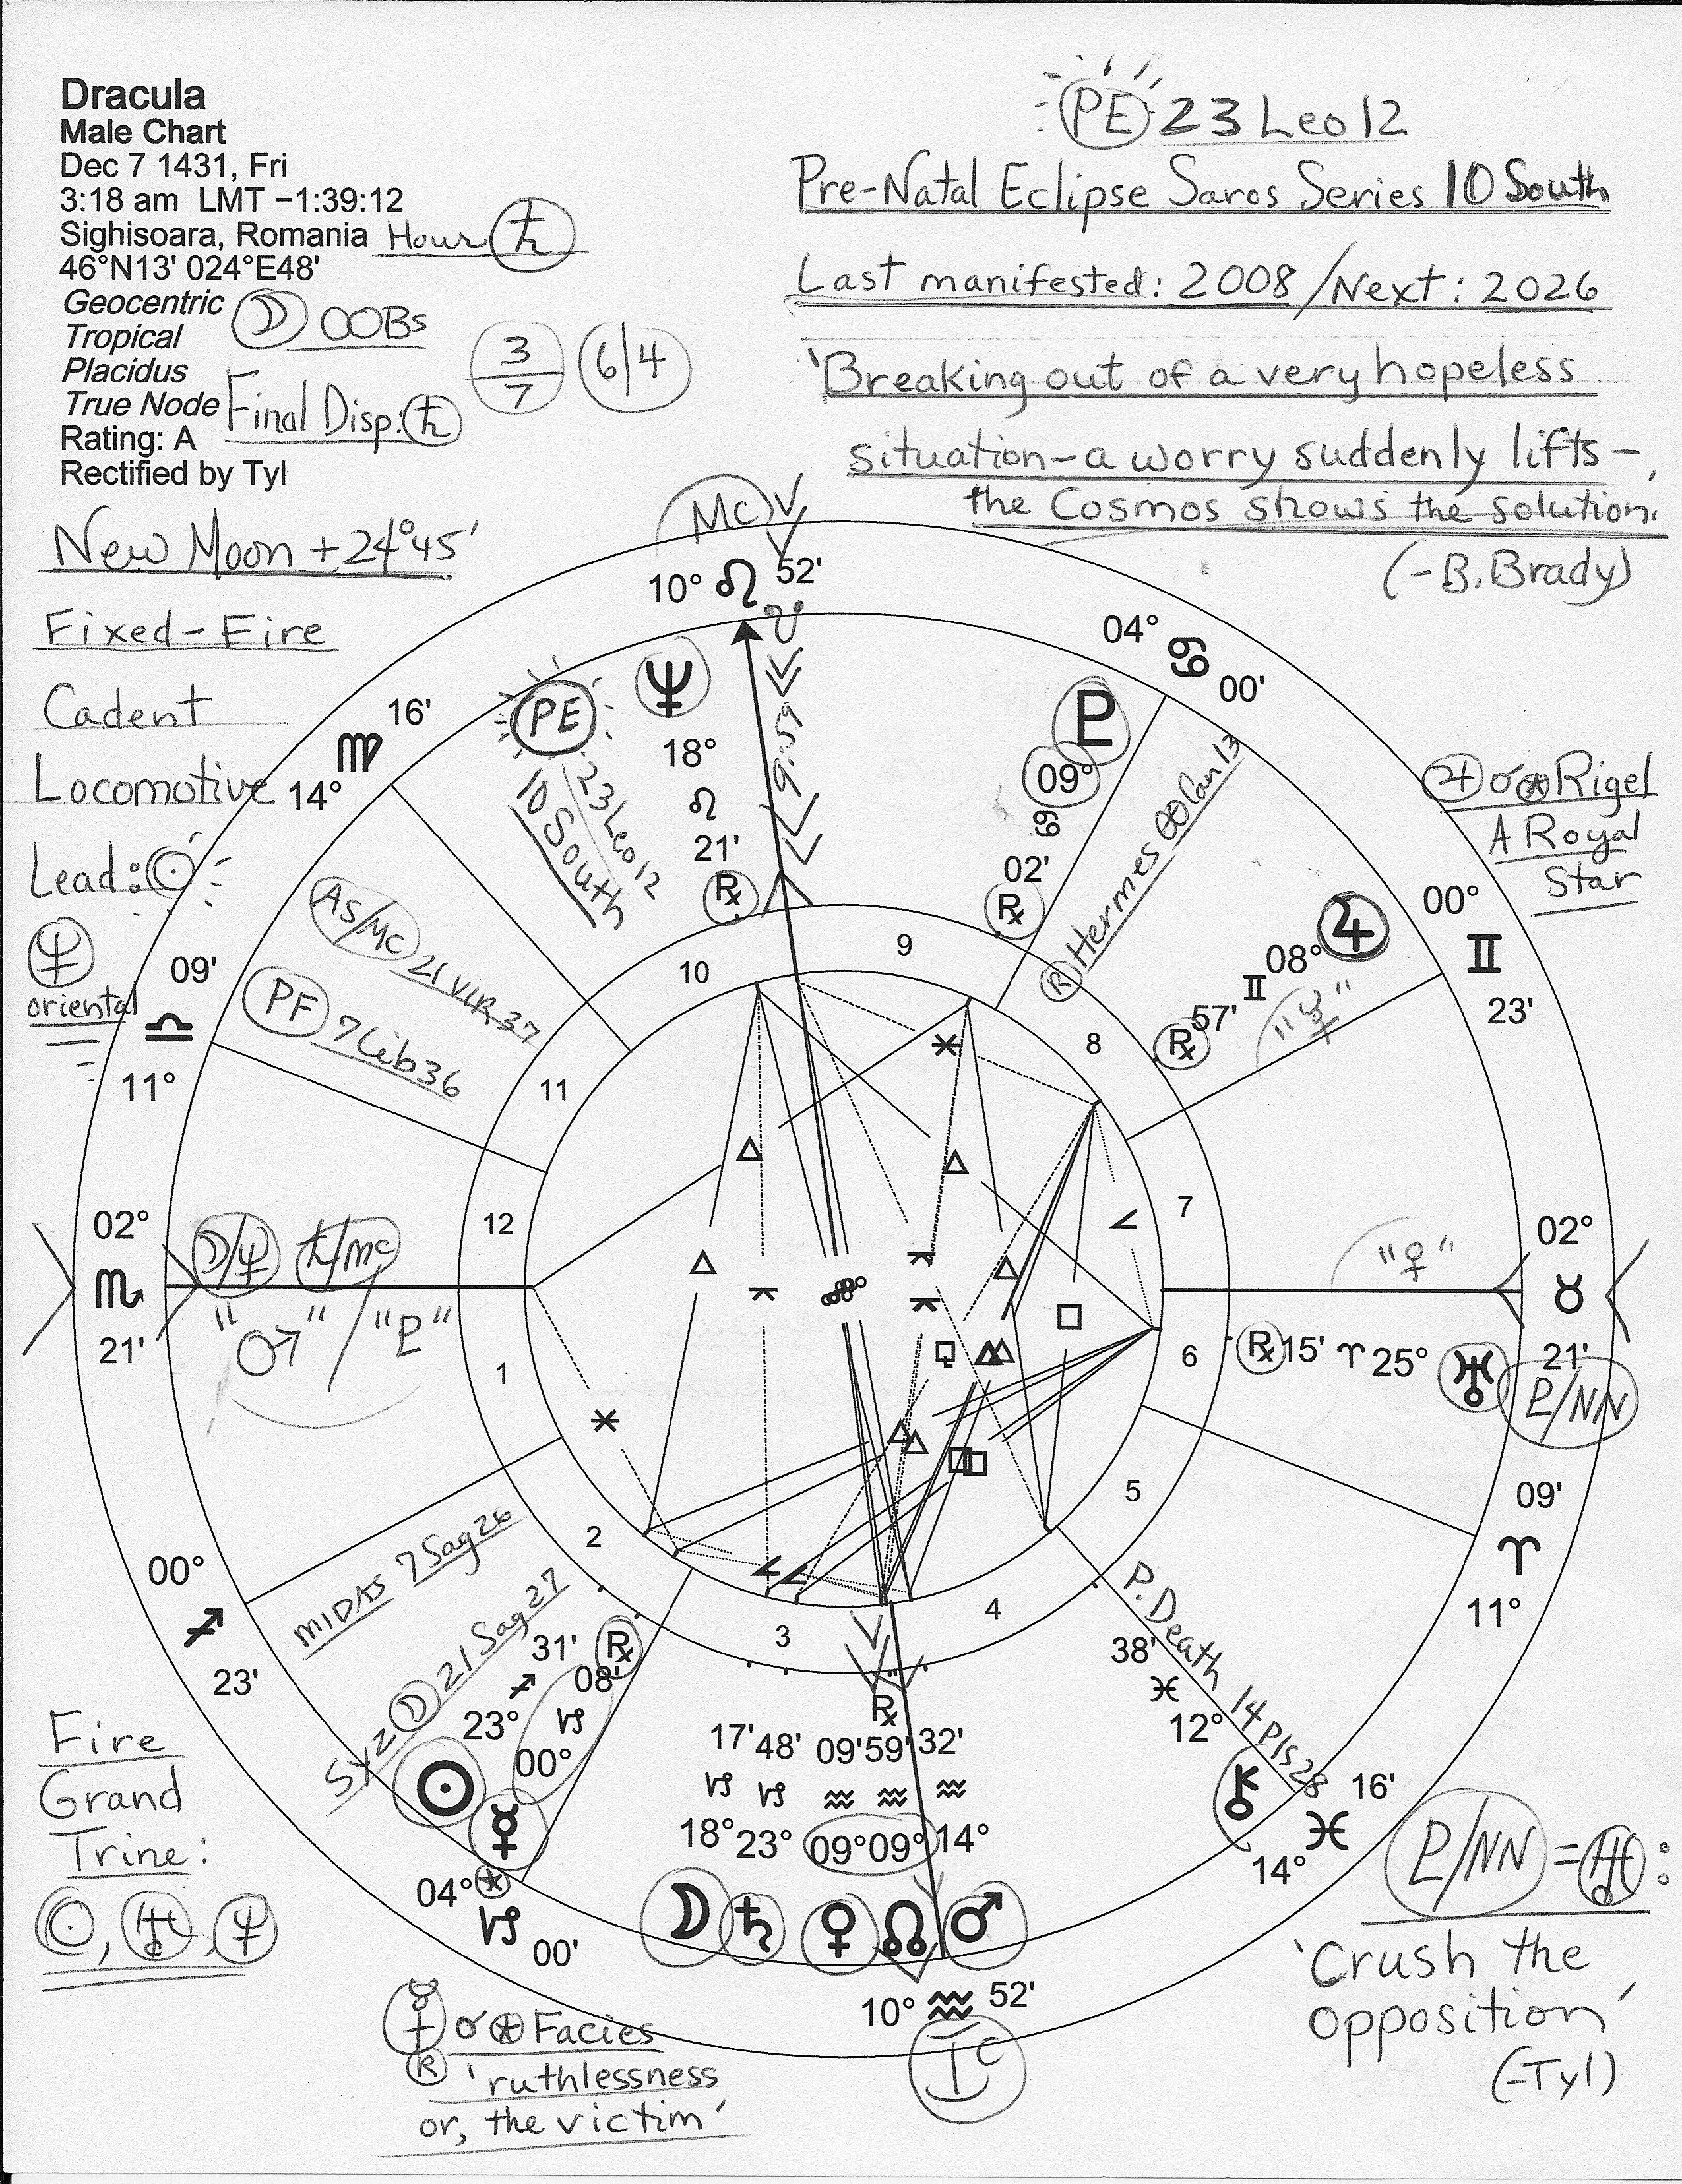 A rectified natal horoscope for dracula judes threshold which squares uranus from its own sign of capricorn sign of law and government neptune in royal leo sign of the natural ruler is atop the chart nvjuhfo Choice Image